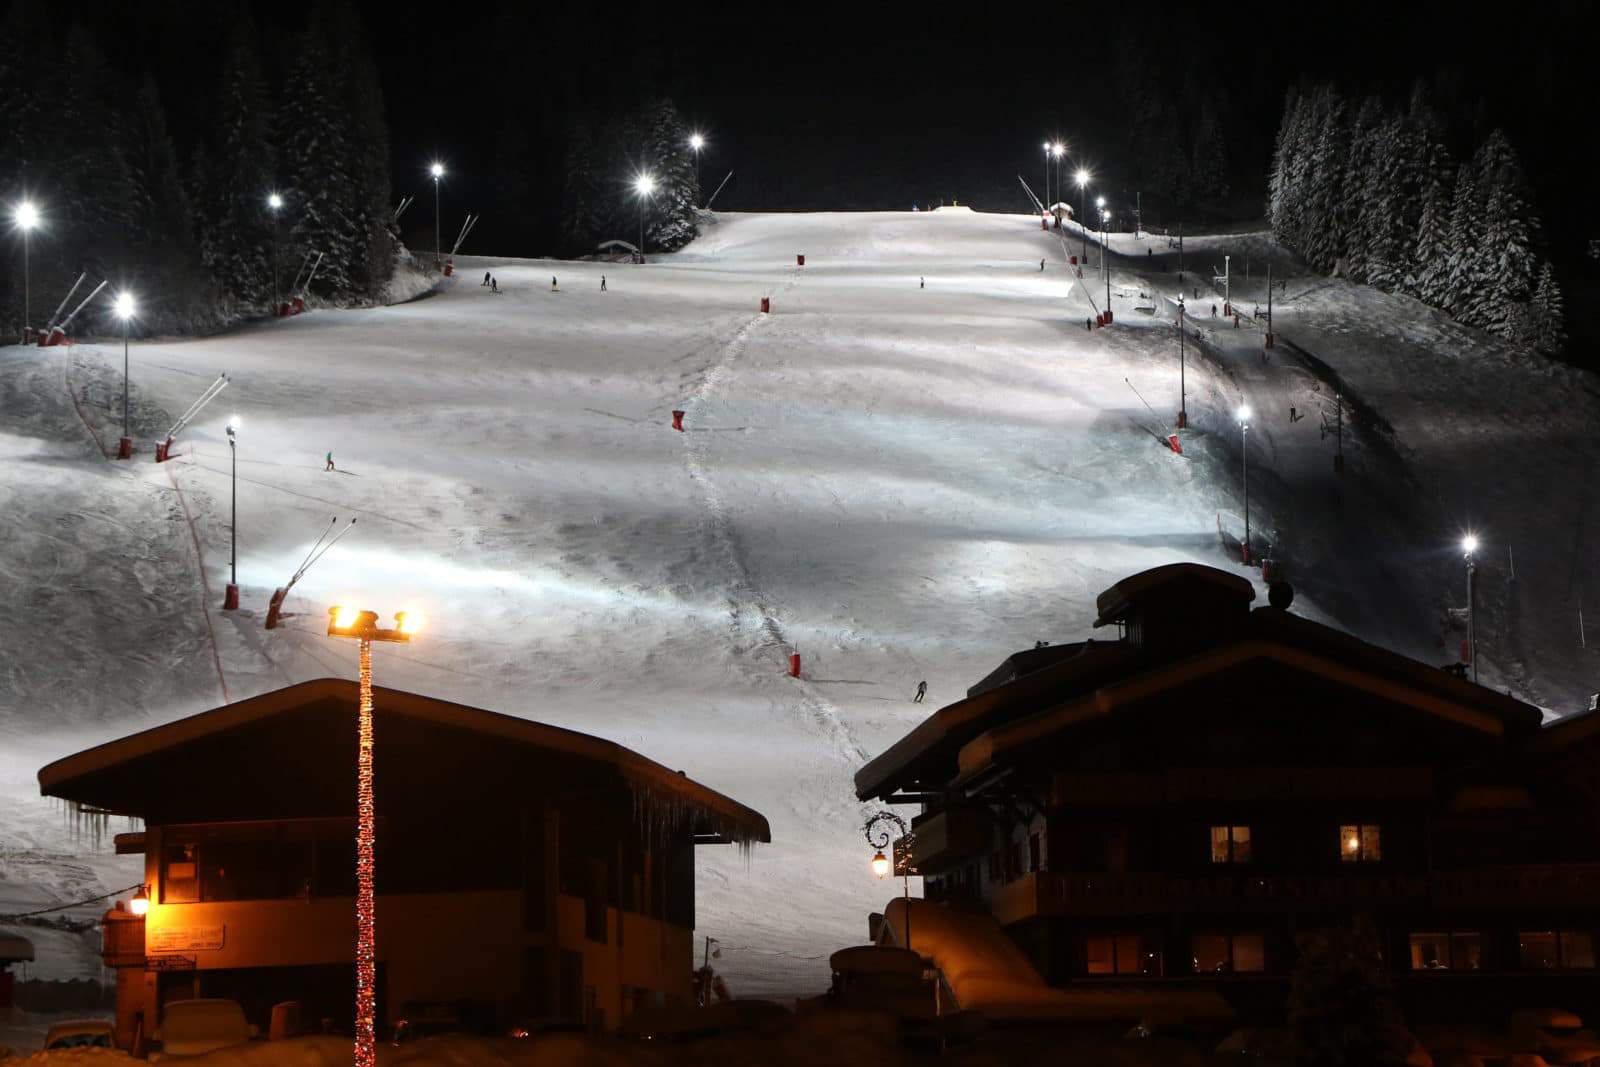 night skiing at Linga, Châtel